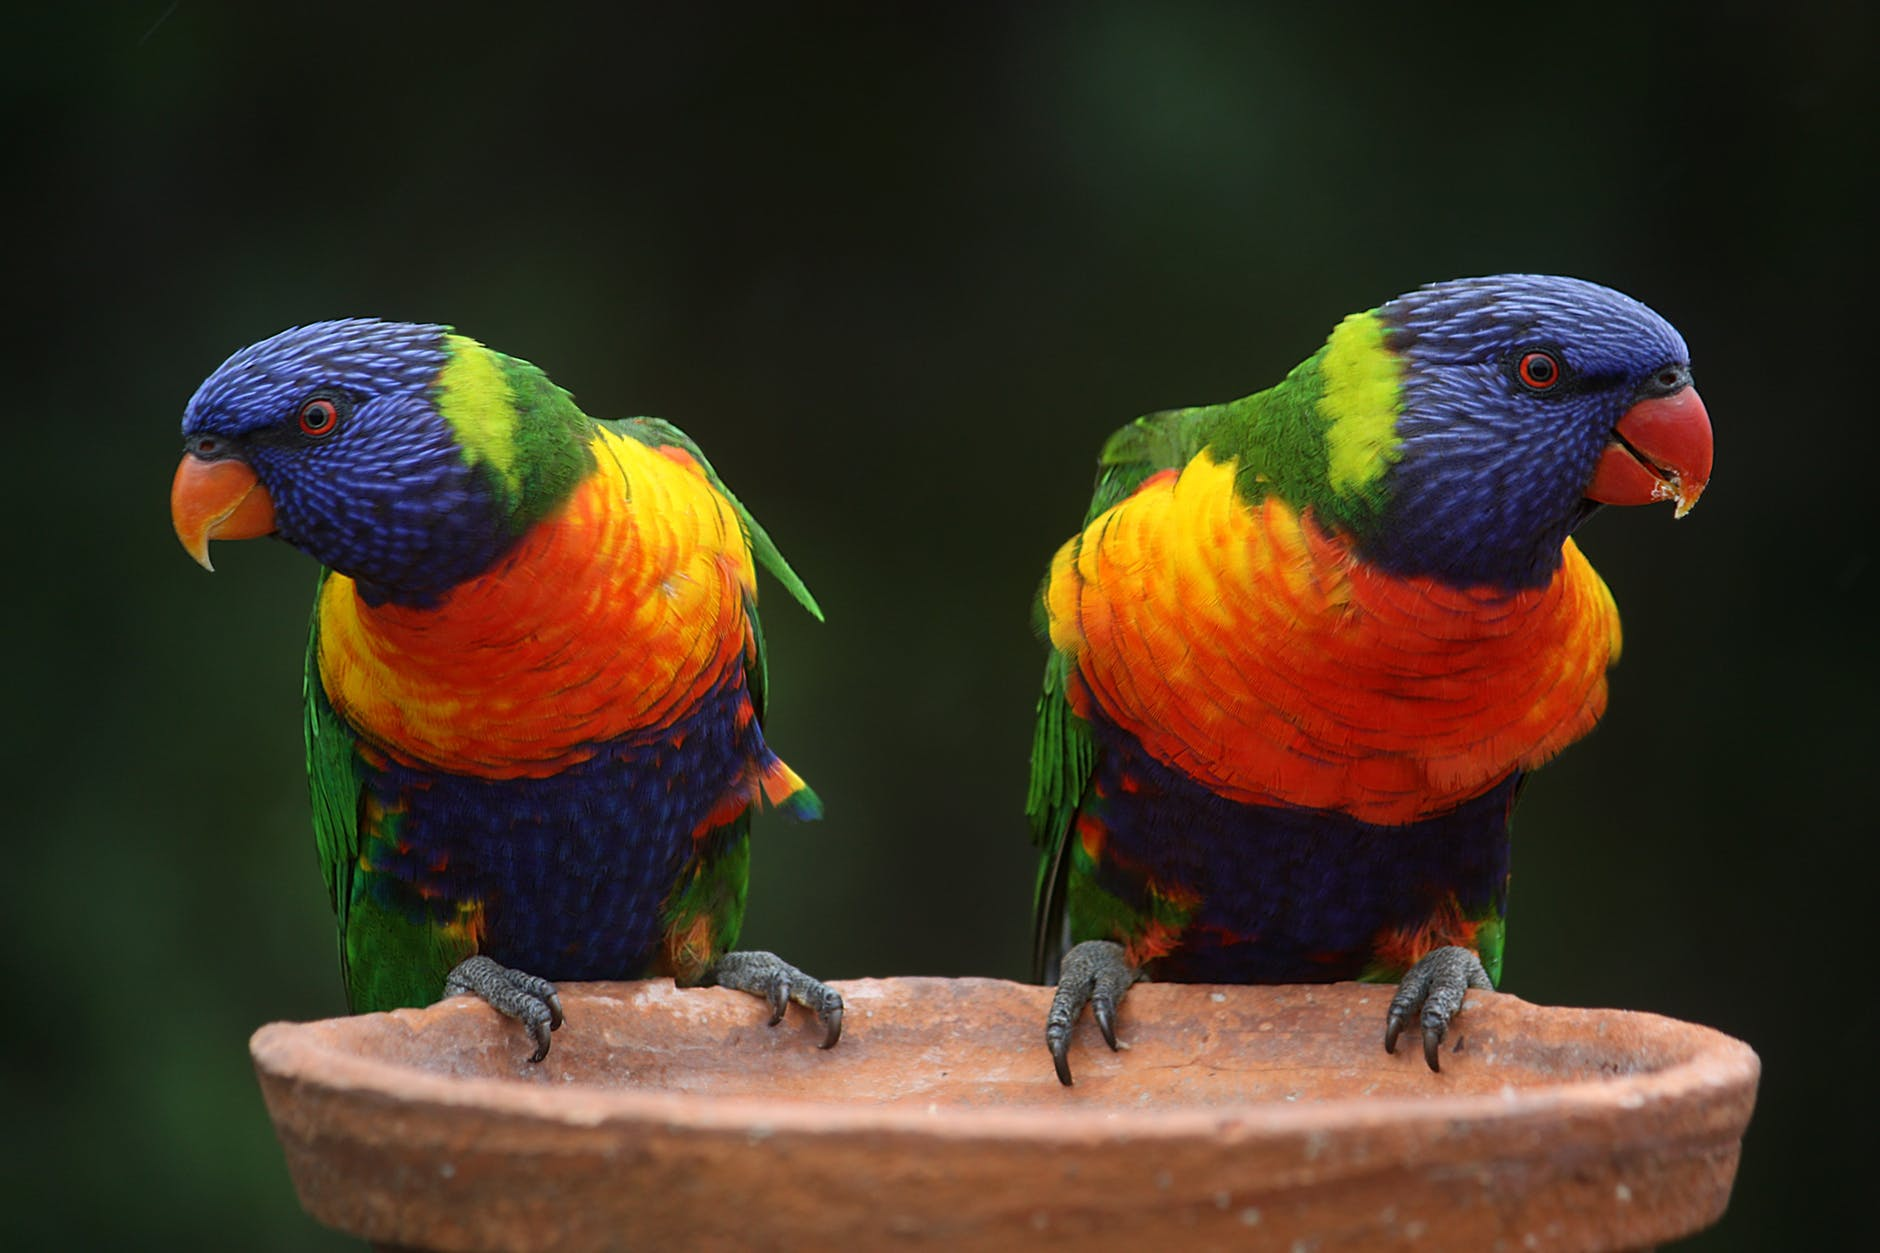 Parrots on a perch, illustrating distinct financial branding